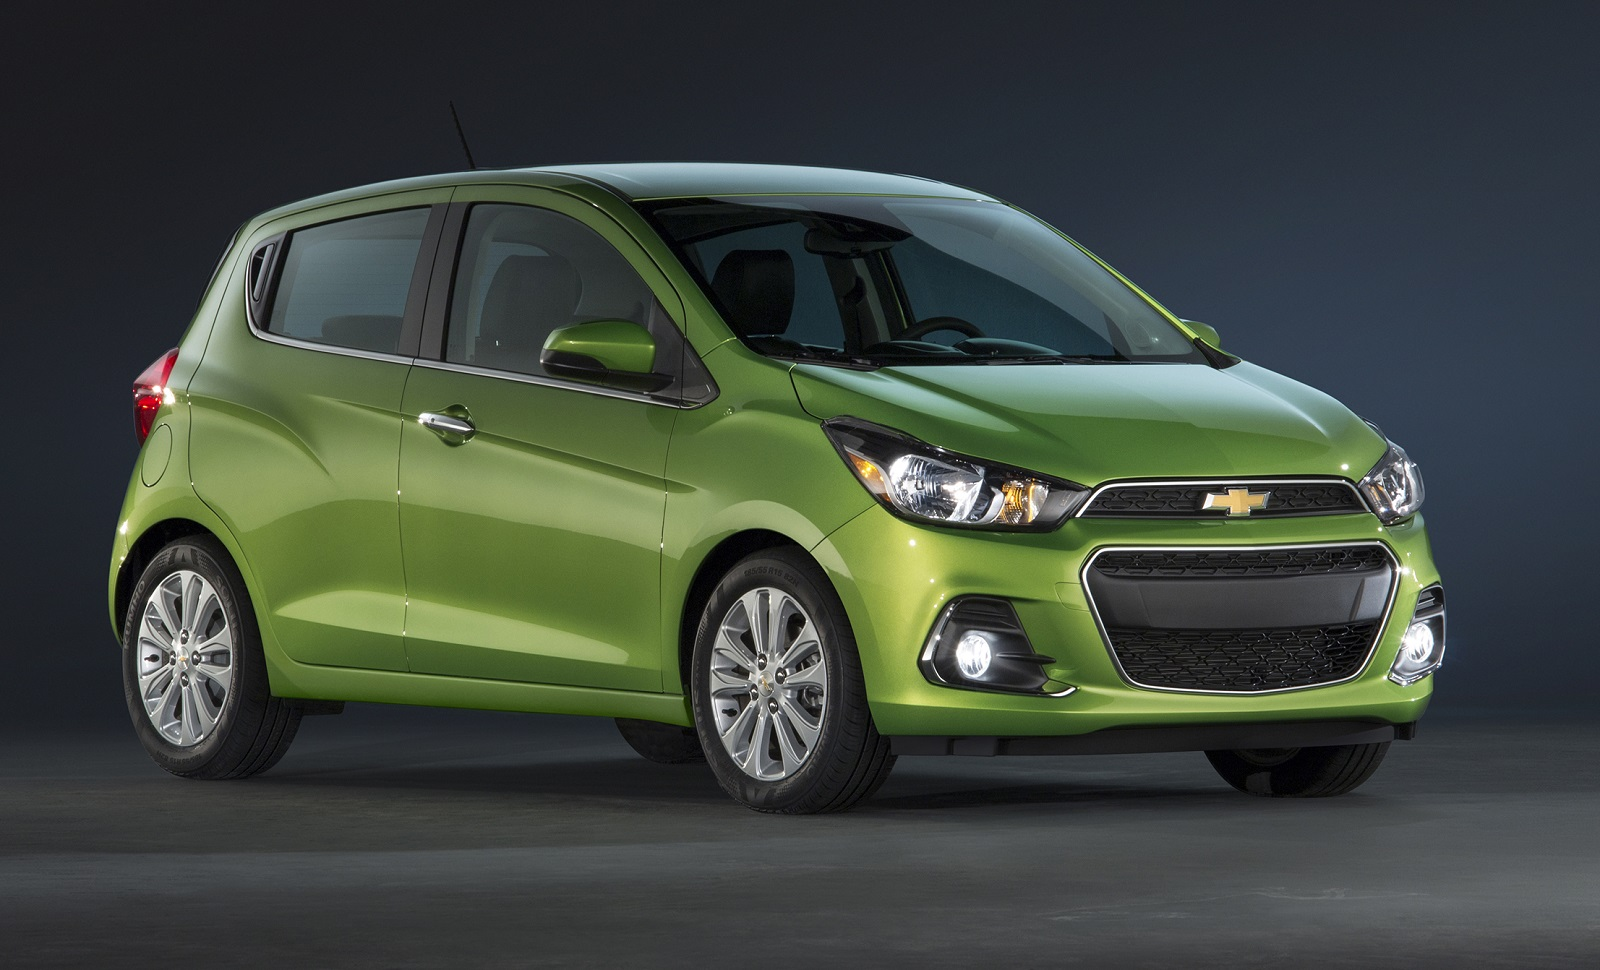 New And Used Chevrolet Spark (Chevy): Prices, Photos